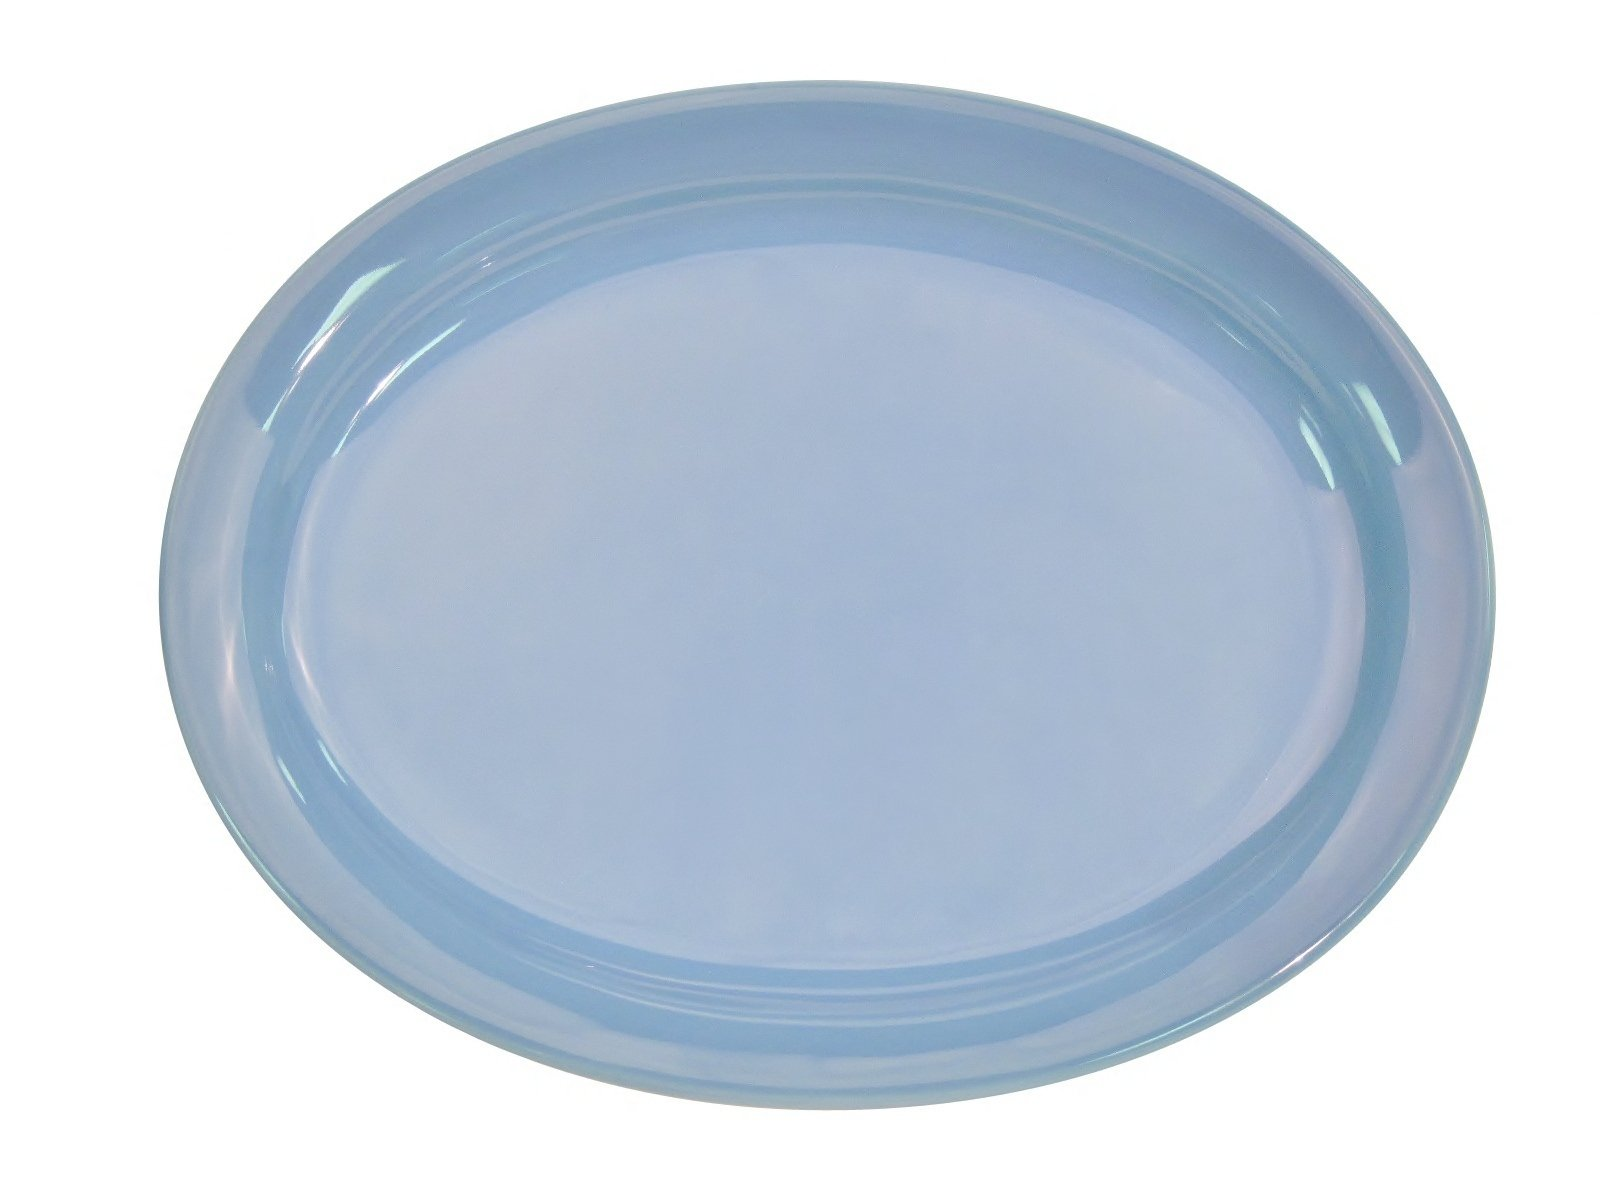 CAC China L-14NR-LB Las Vegas Narrow Rim 13-1/4-Inch by 10 1/8-Inch Light Blue Stoneware Oval Platter, Box of 12